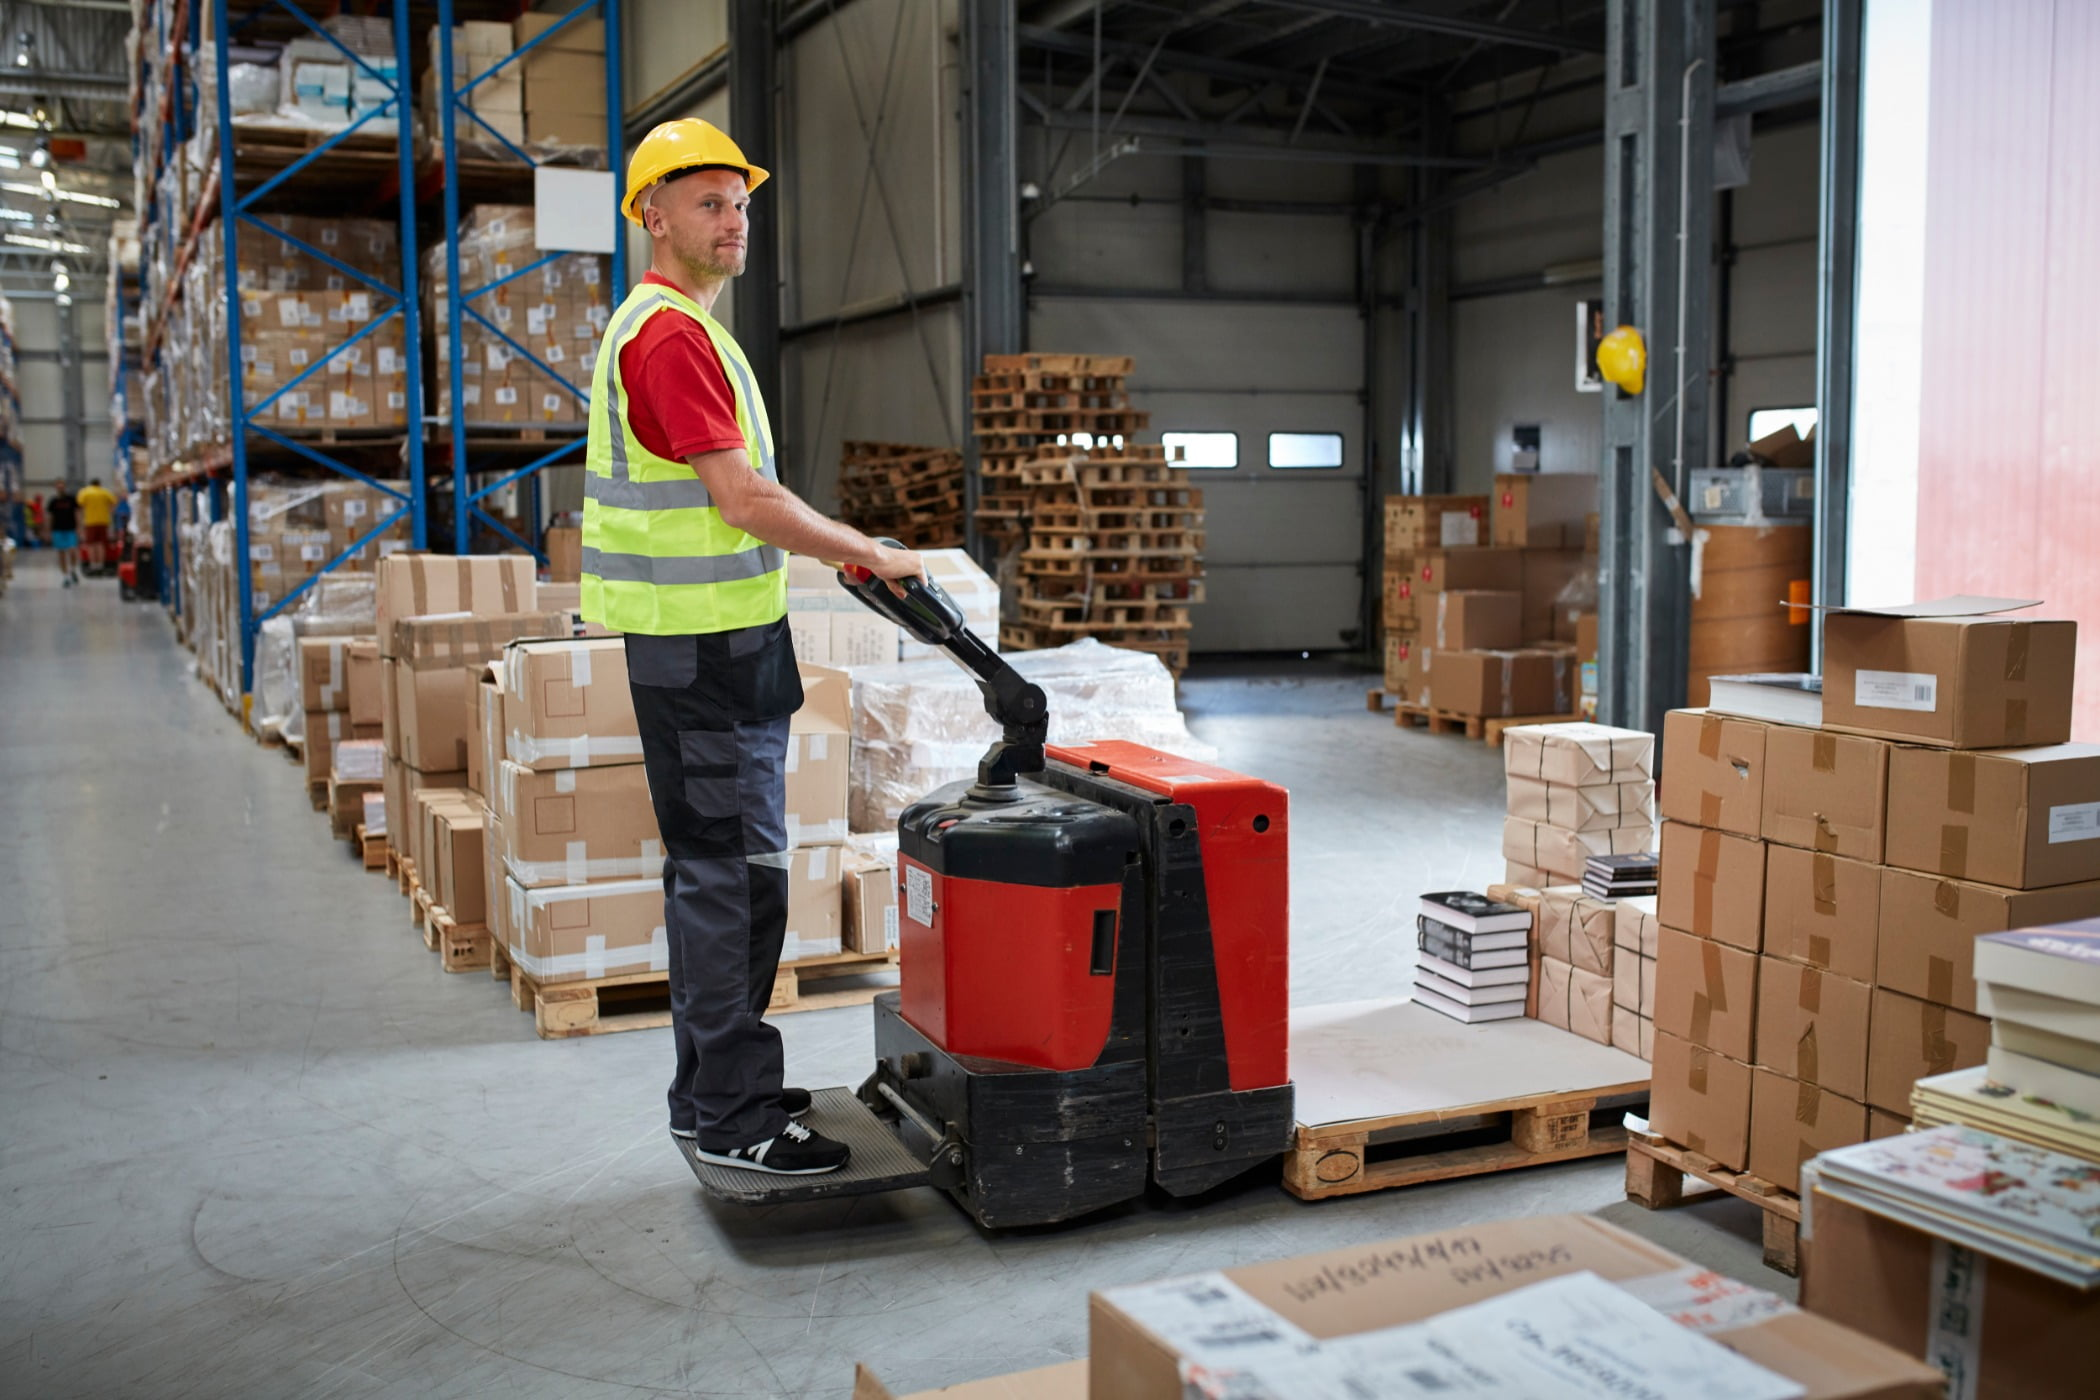 Luggage and bags, Shipping box, Automotive design, Package delivery, Workwear, Wood, Bag, Floor, Flooring